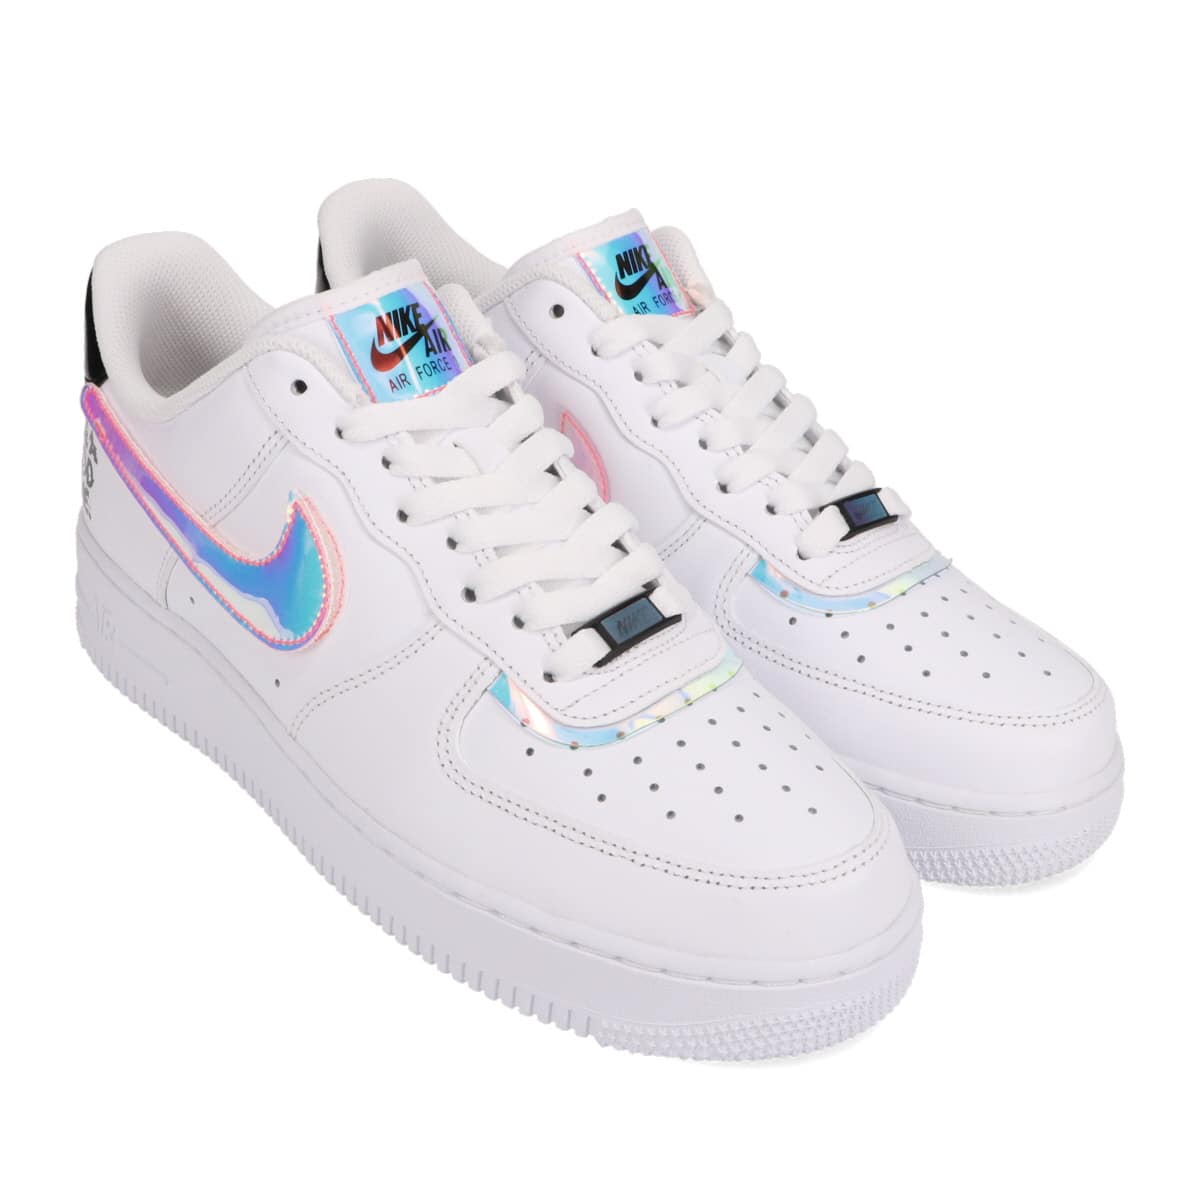 NIKE AIR FORCE 1 '07 LV8 WHITE/MULTI-COLOR-WHITE-BLACK 20HO-I_photo_large